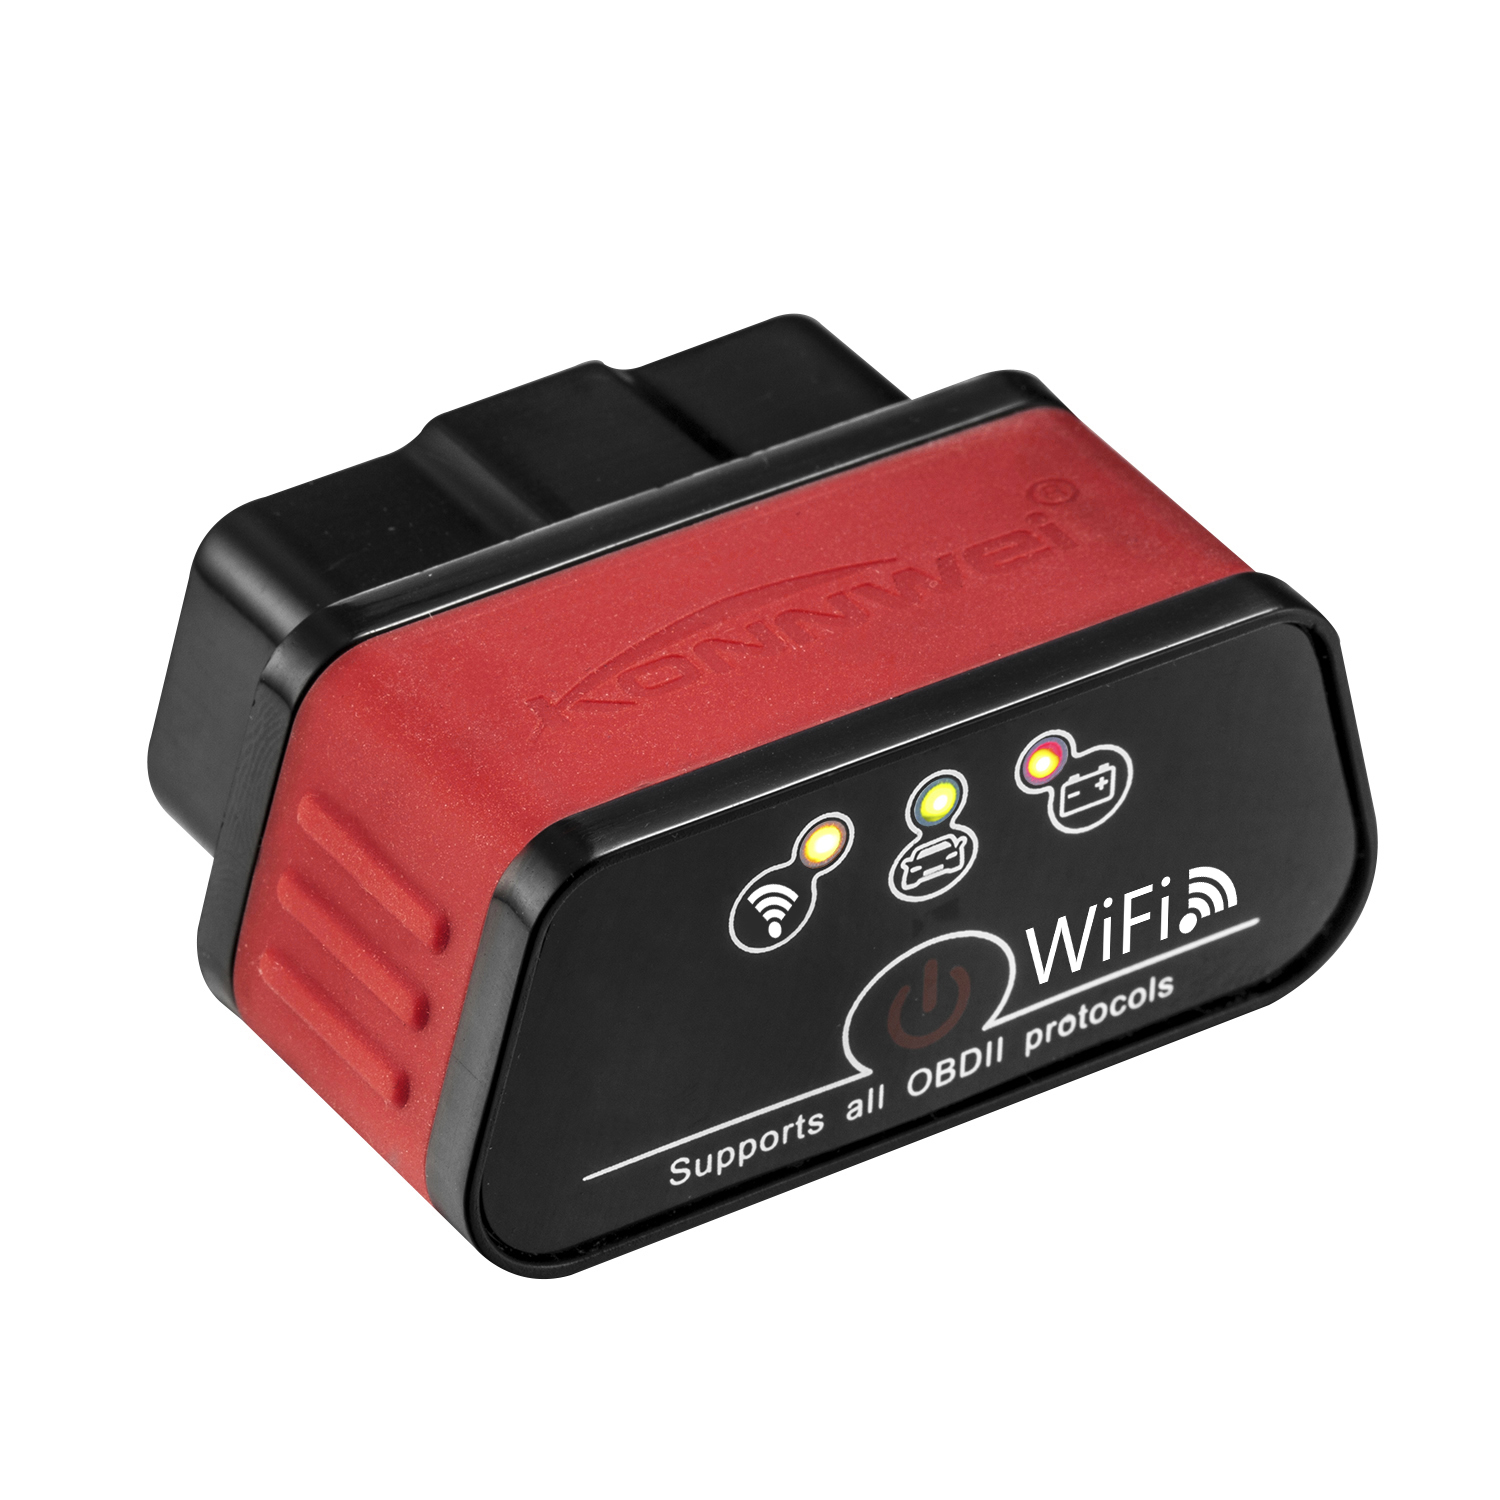 Details about ELM327 WiFi KW903 OBDII OBD2 Car Diagnostic Scanner Code  Reader for IOS Android